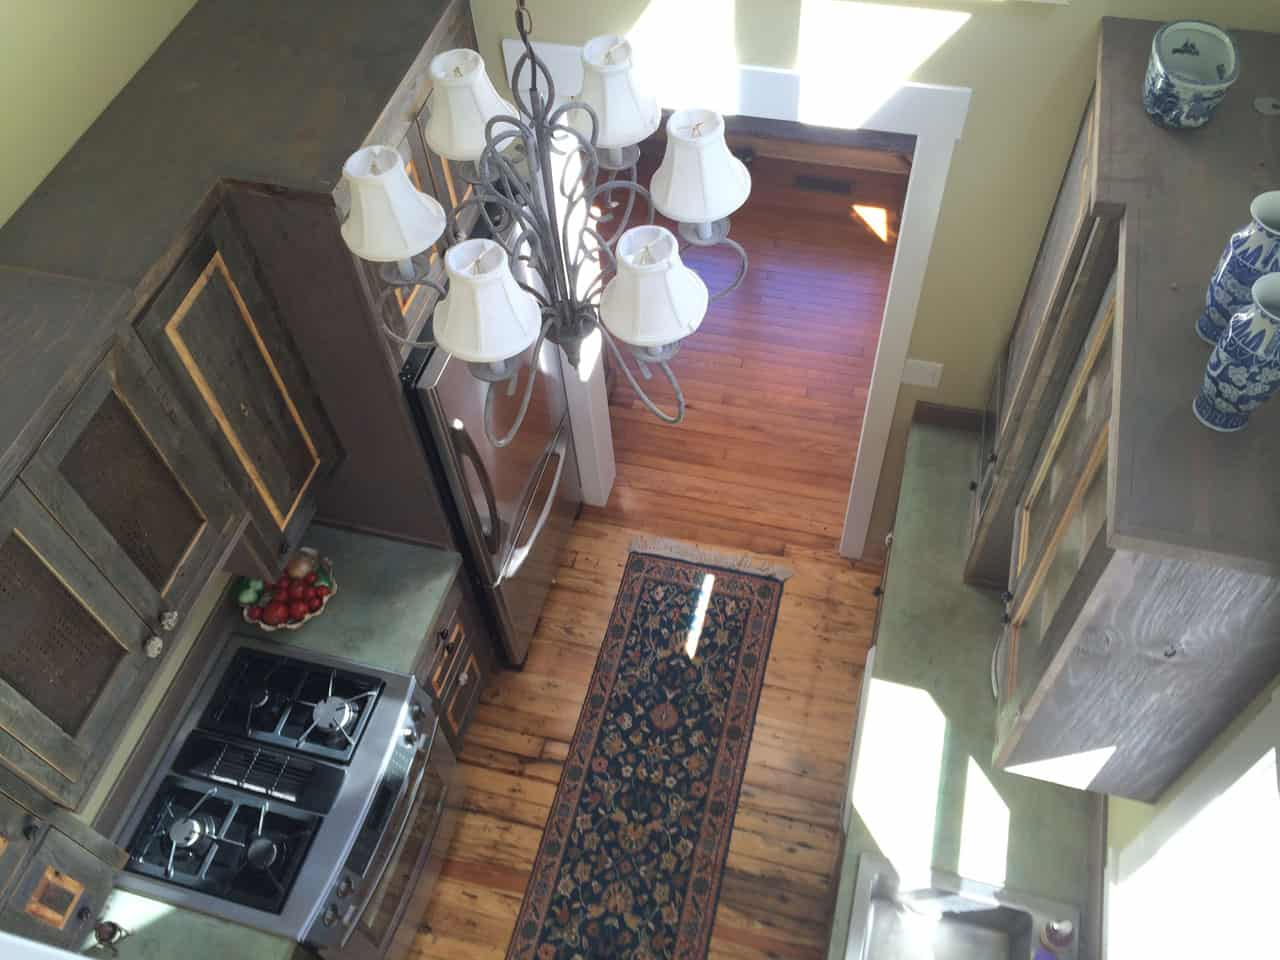 KWESKIN-KITCHEN-VIEW-FROM-LOFT-2